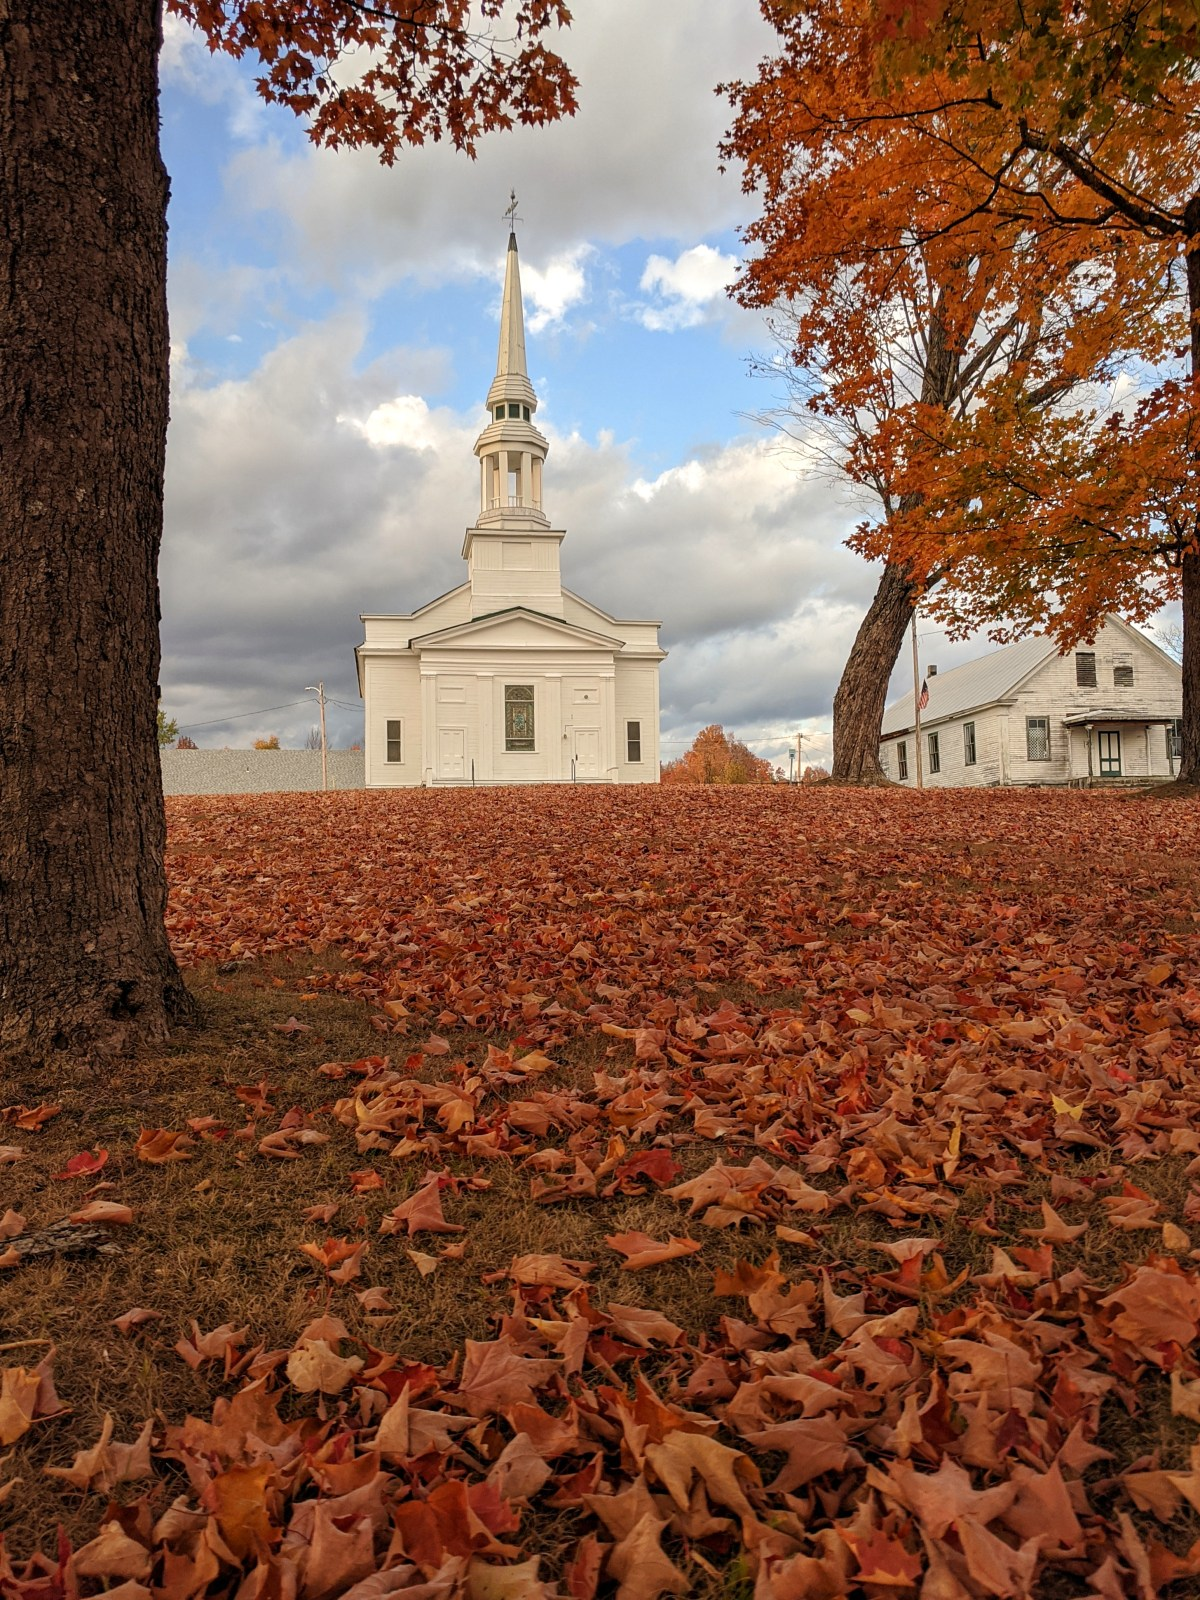 Vermont is known for it white churches among the trees.